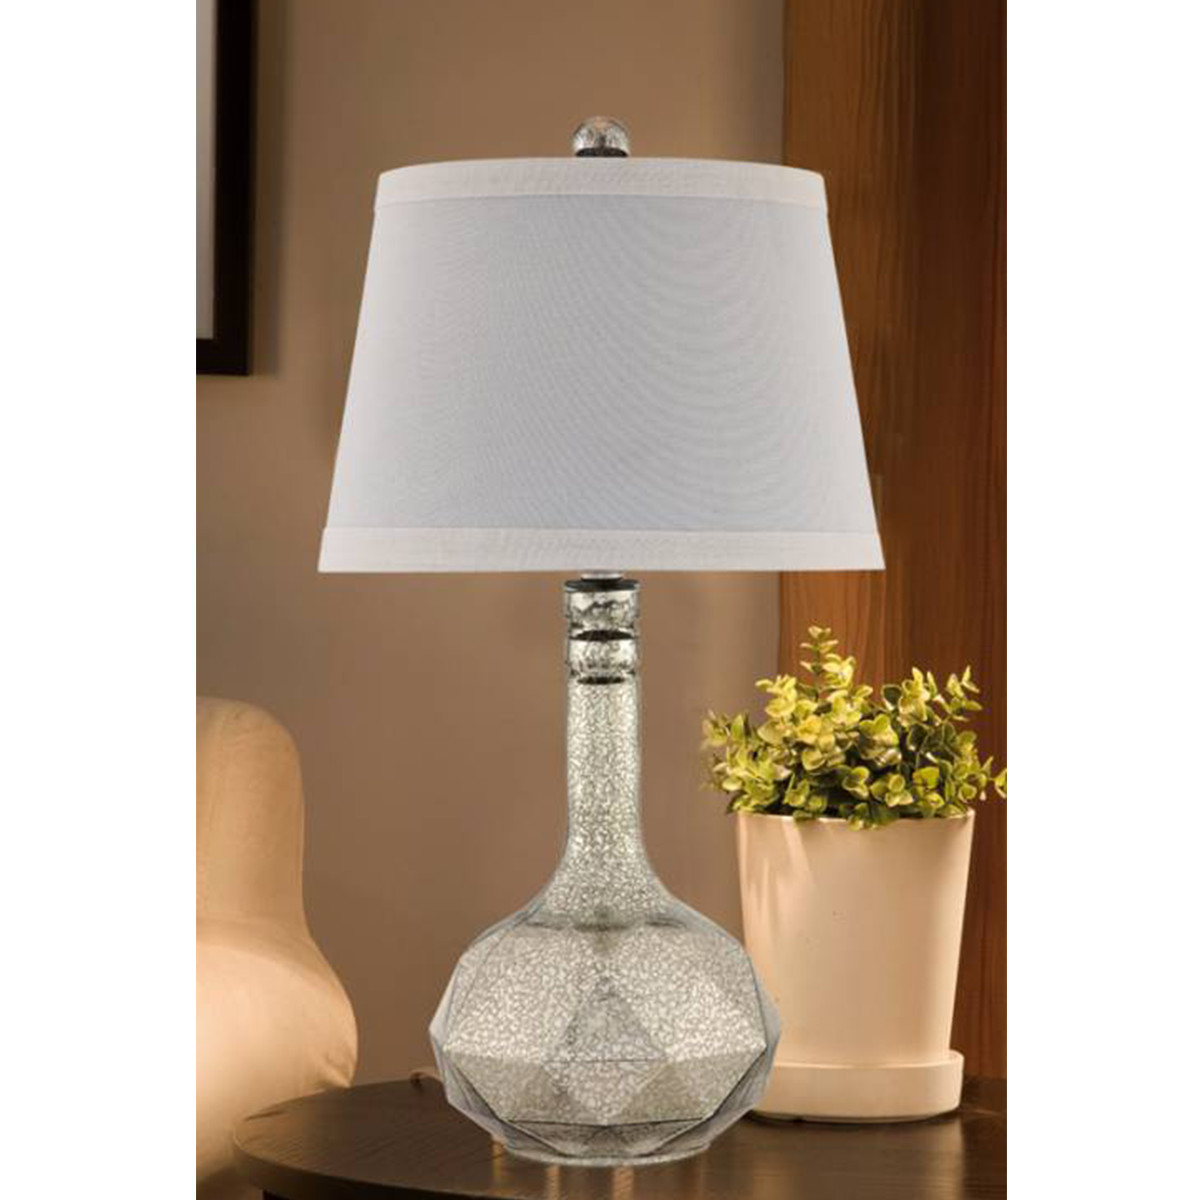 Table lamp with a crackled metallic base and white shade photo